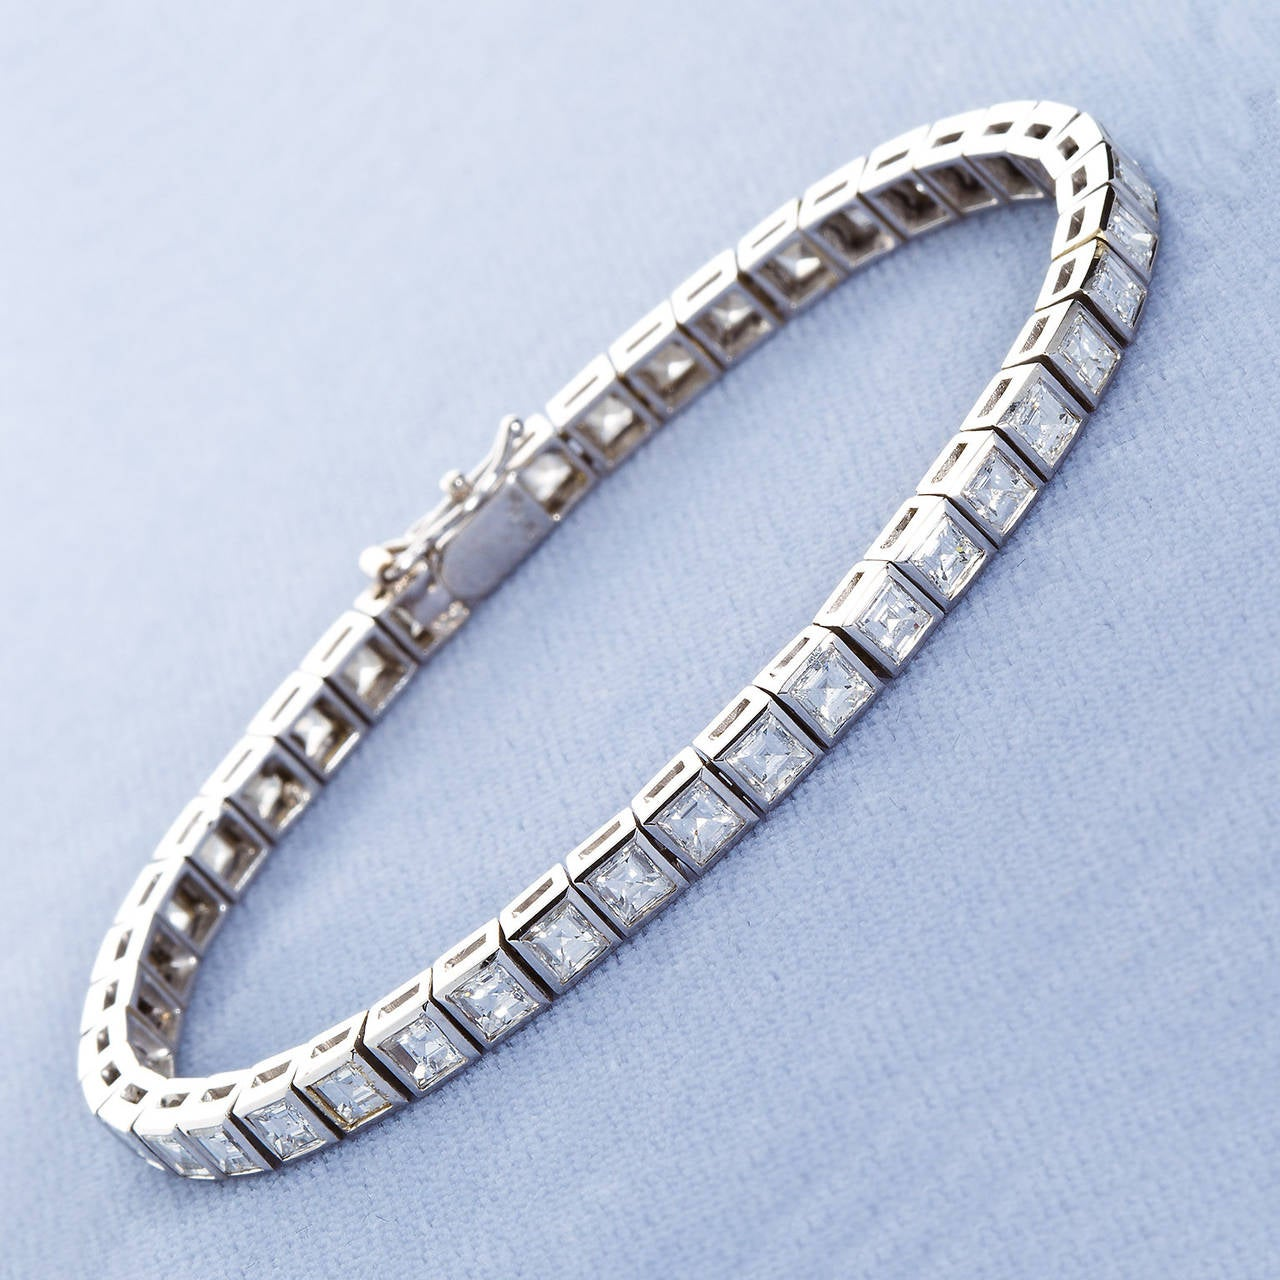 Square Cut Diamond 10 Carat Tennis Bracelet For Sale At